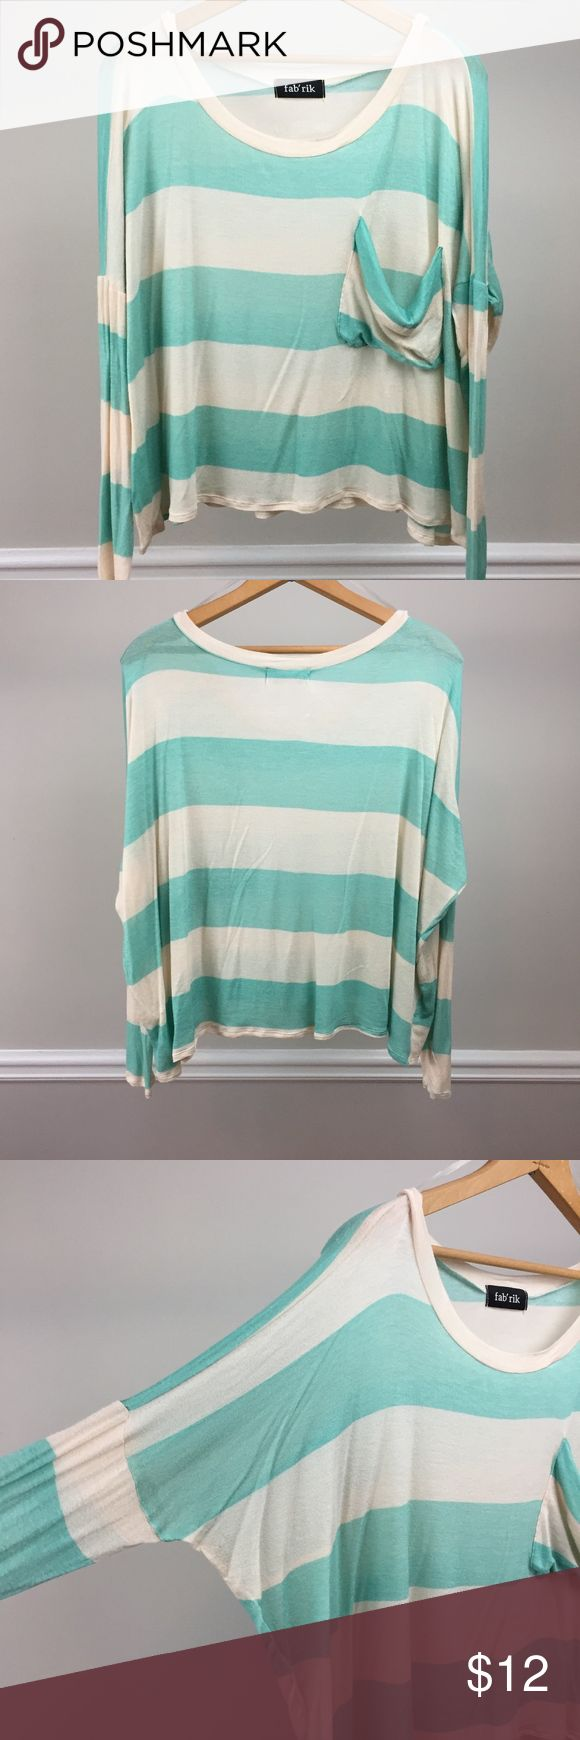 """Fab'rik Cropped Slouchy Top Mint and off-white, rayon and spandex, cropped, oversized, dropped-shoulder, lightweight tee.   Size M, flat-measures 58"""" at bust and is 18"""" in length. Fab'rik Tops"""